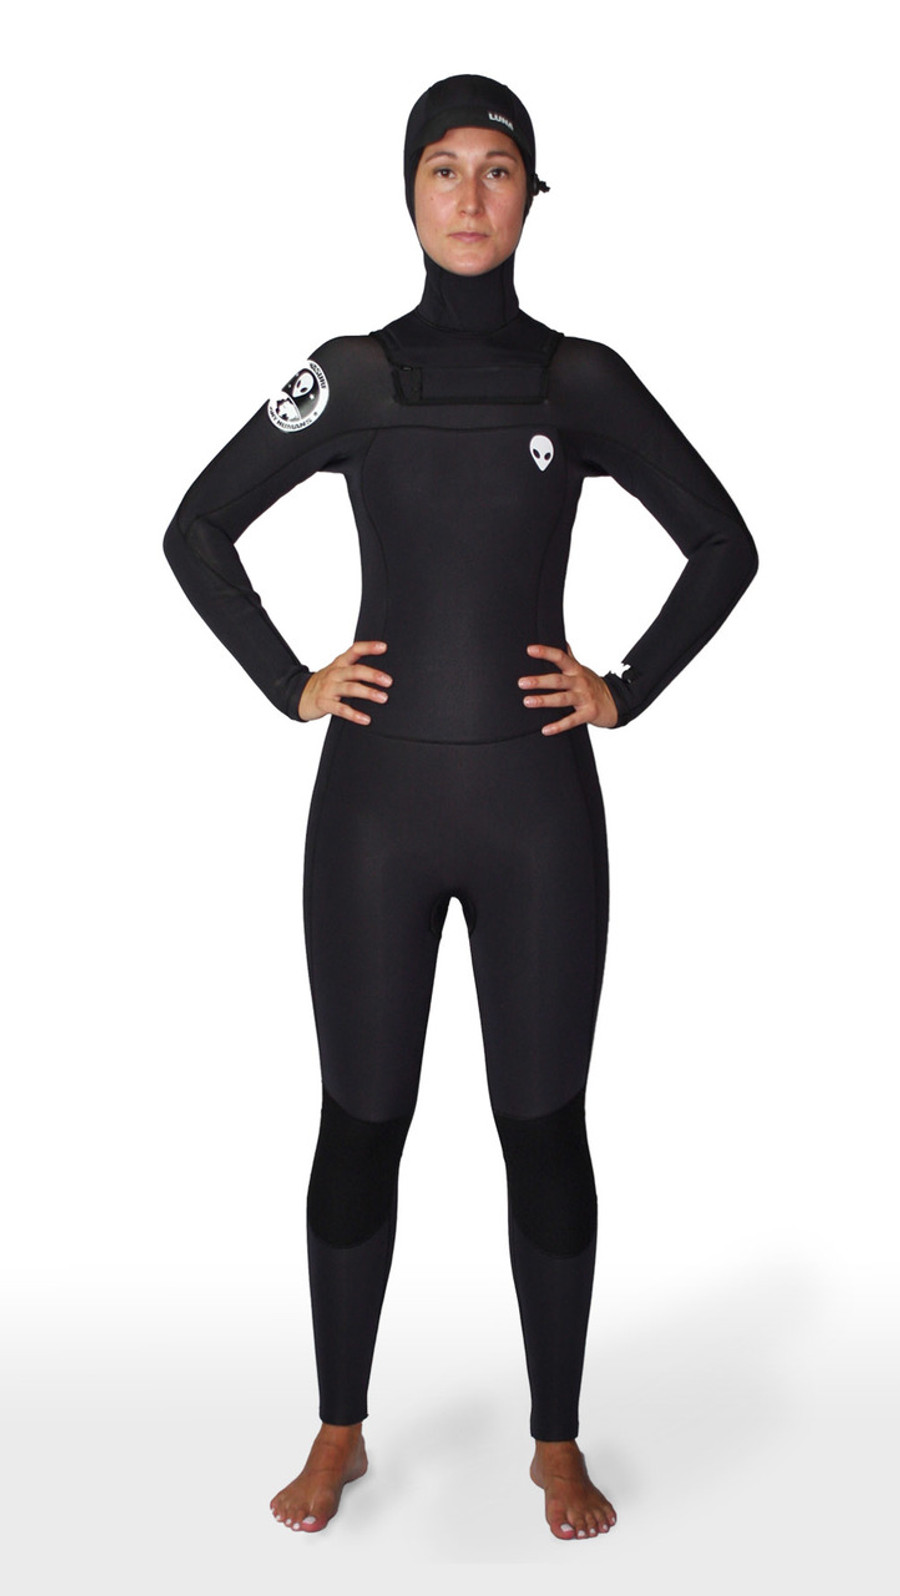 6.4mm hooded womens wetsuit